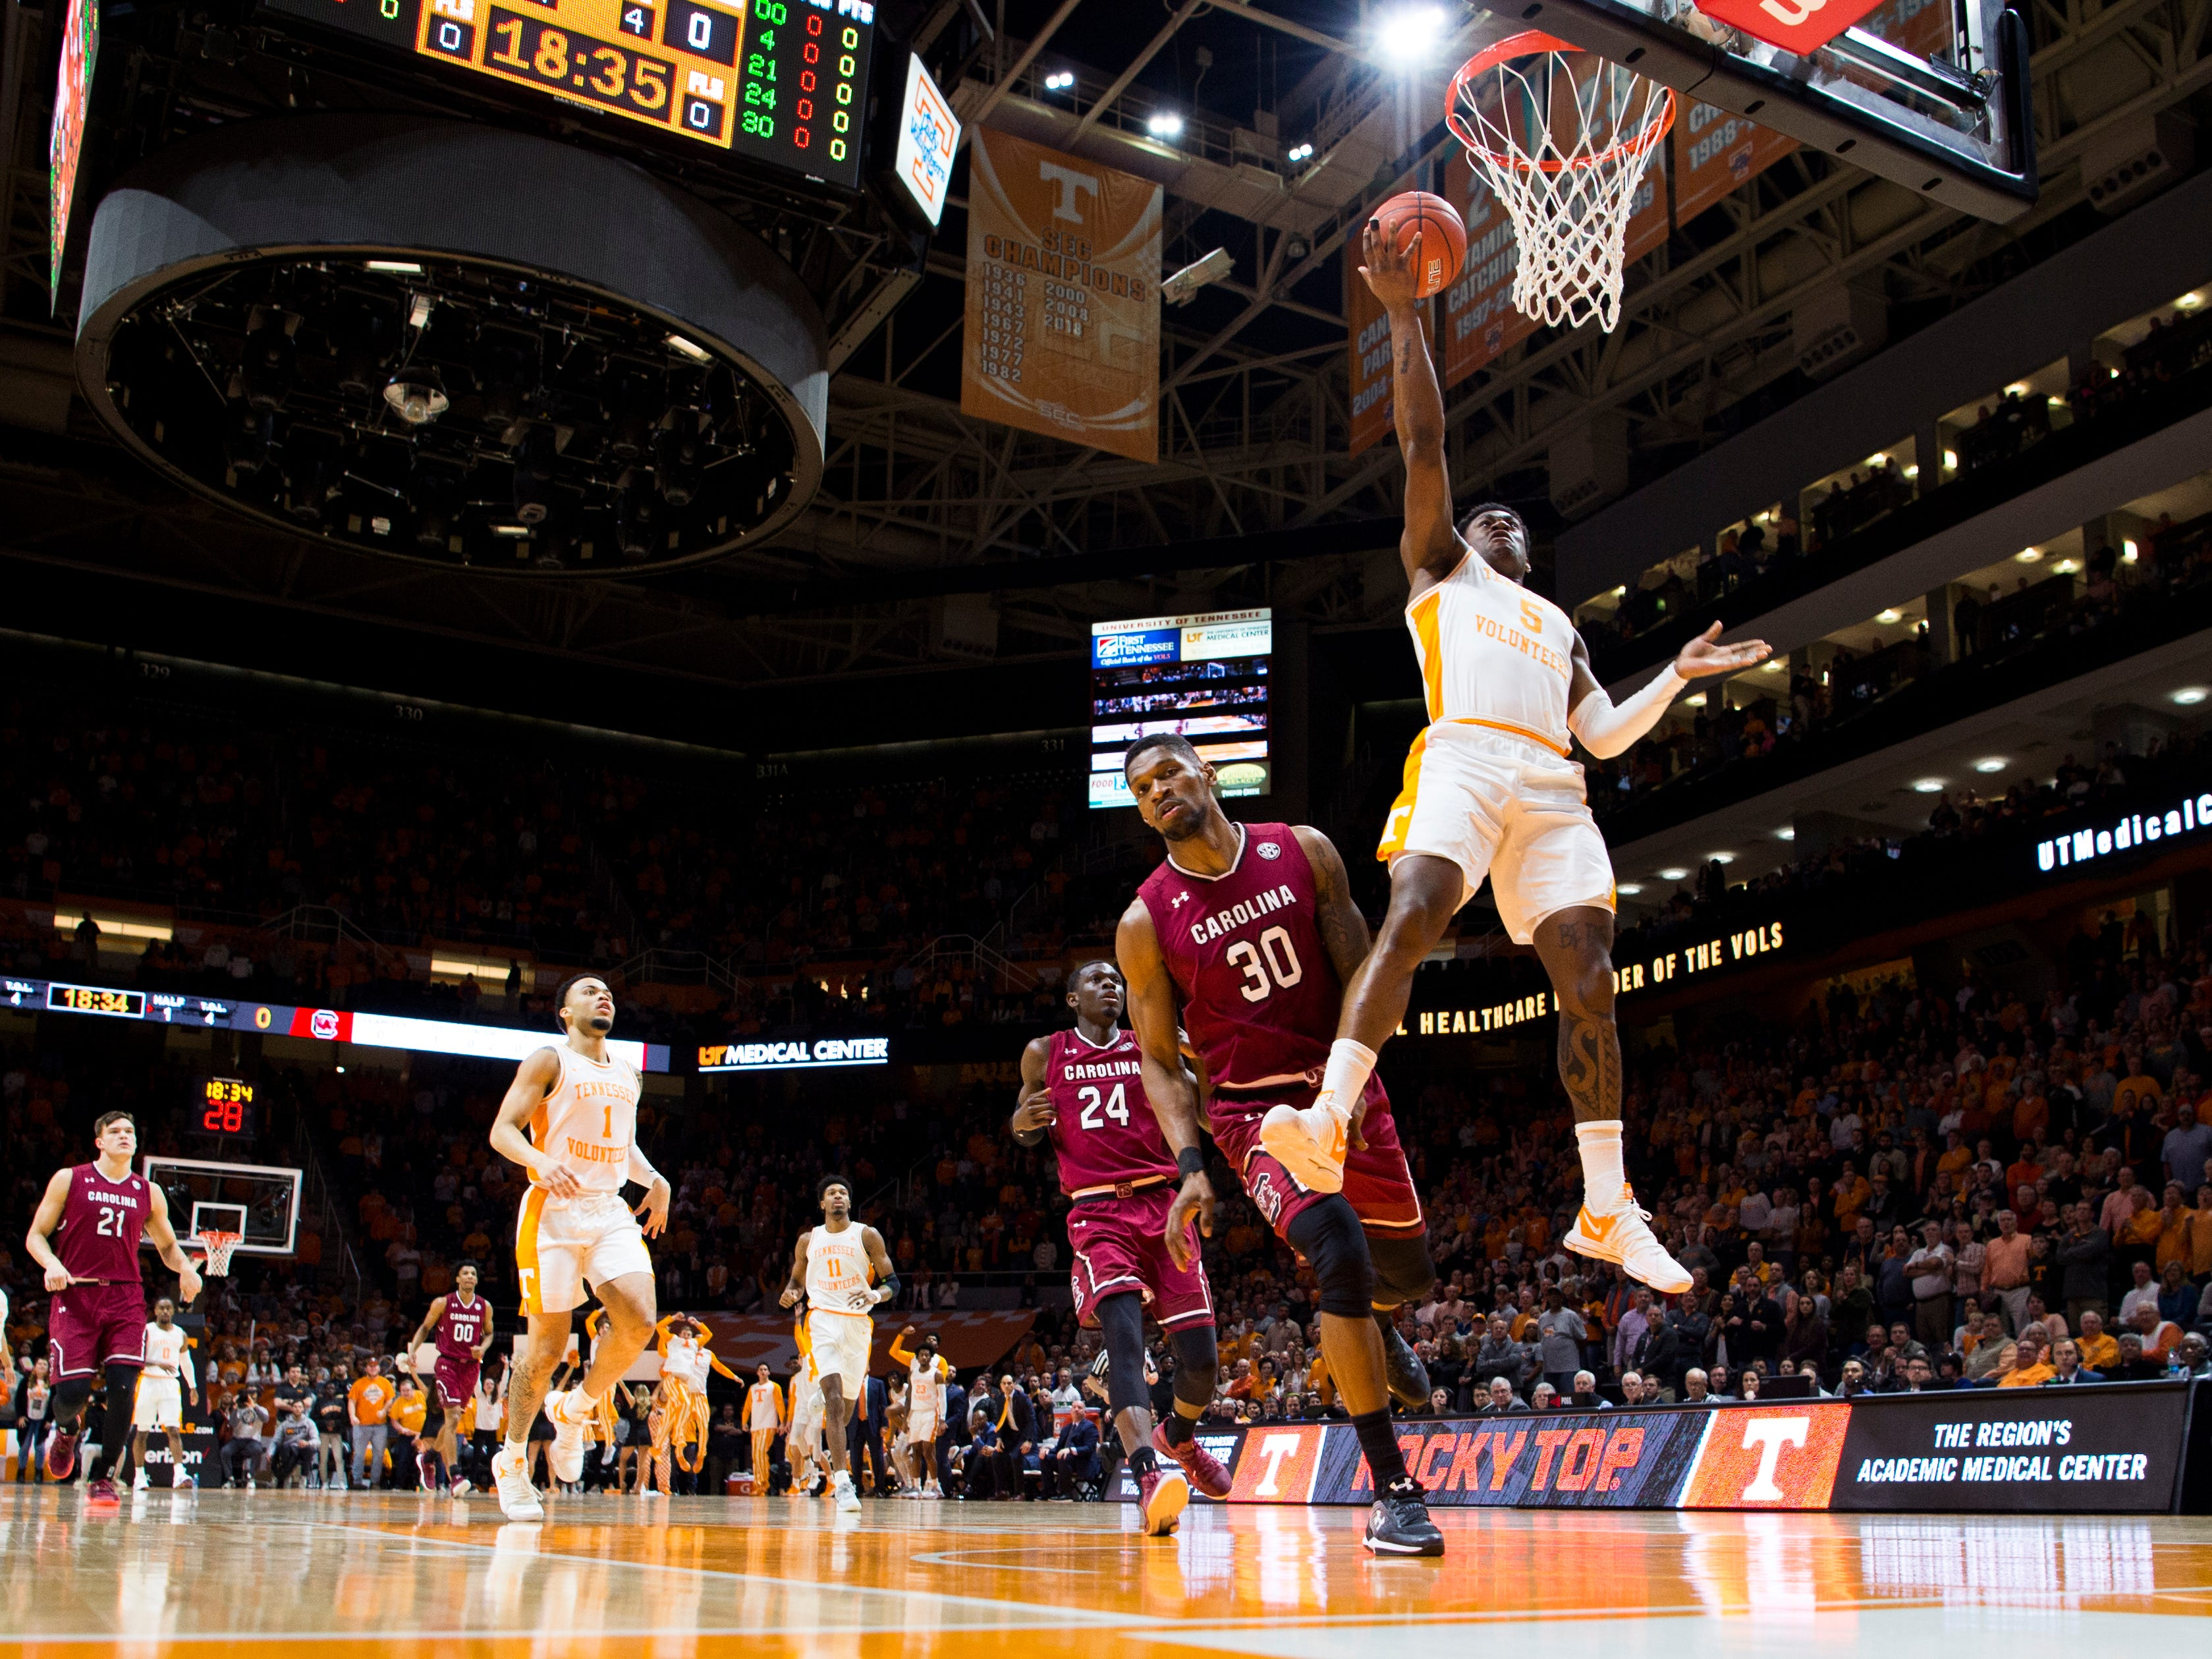 Tennessee guard Admiral Schofield (5) dunks the ball during Tennessee's home SEC game against South Carolina at Thompson-Boling Arena in Knoxville on Wednesday, February 13, 2019.